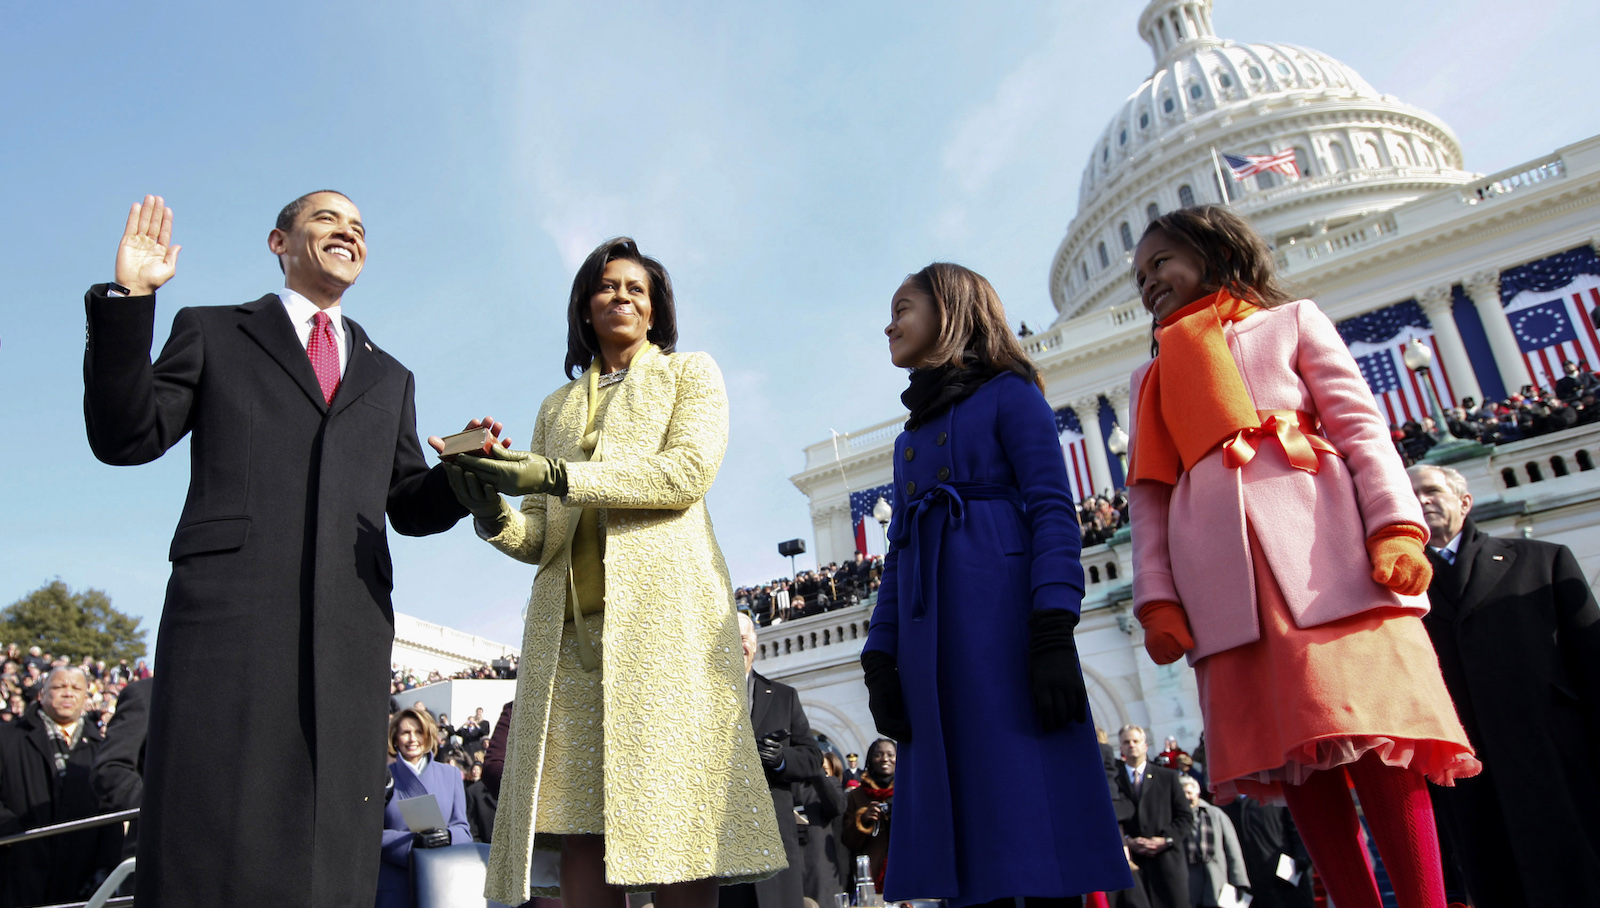 U.S. President Barack Obama takes the Oath of Office as the 44th U.S. President with his wife Michelle, daughters Malia (2nd R) and Sasha (R) by his side at the U.S. Capitol in Washington January 20, 2009. Obama became the first African-American president in U.S. history.  REUTERS/Chuck Kennedy/Pool  (UNITED STATES) - RTR23NNC